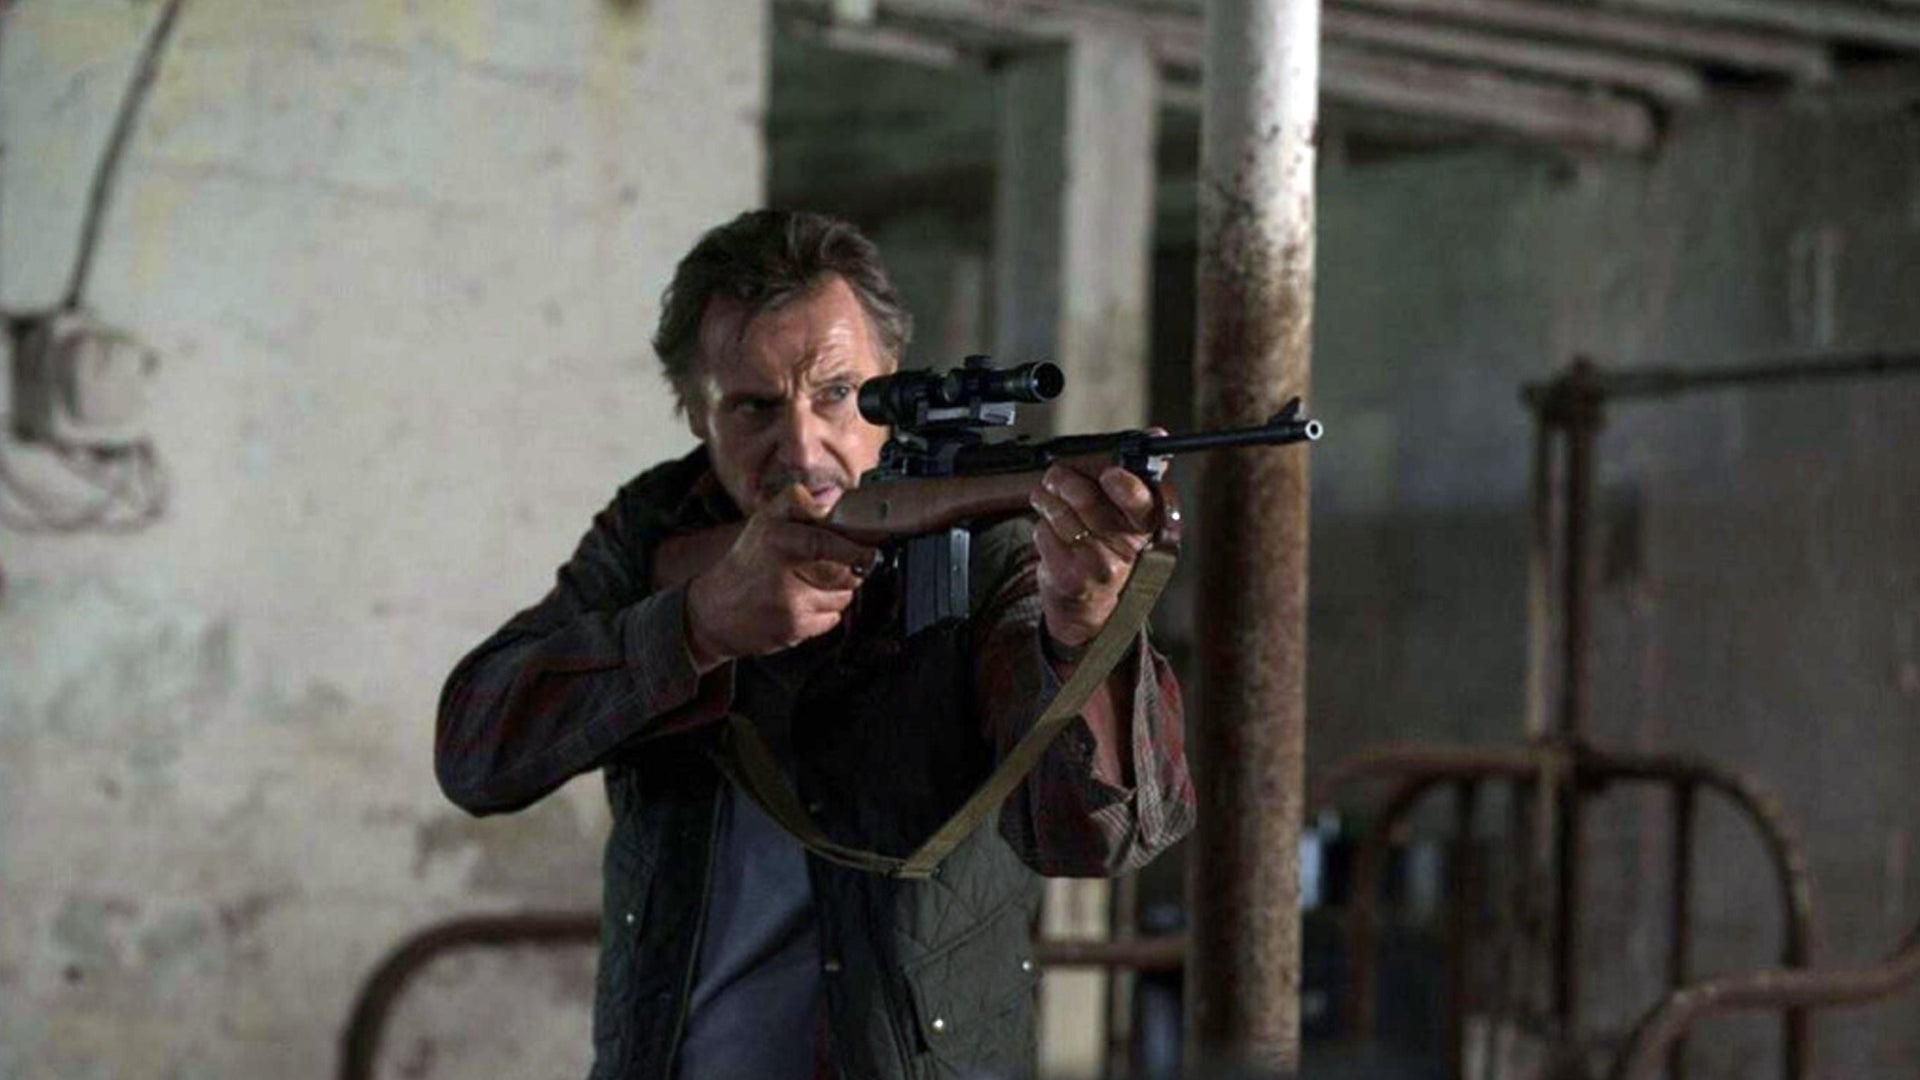 Liam Neeson plays a Marine vet battling Mexican cartel thugs in new action flick 'The Marksman'